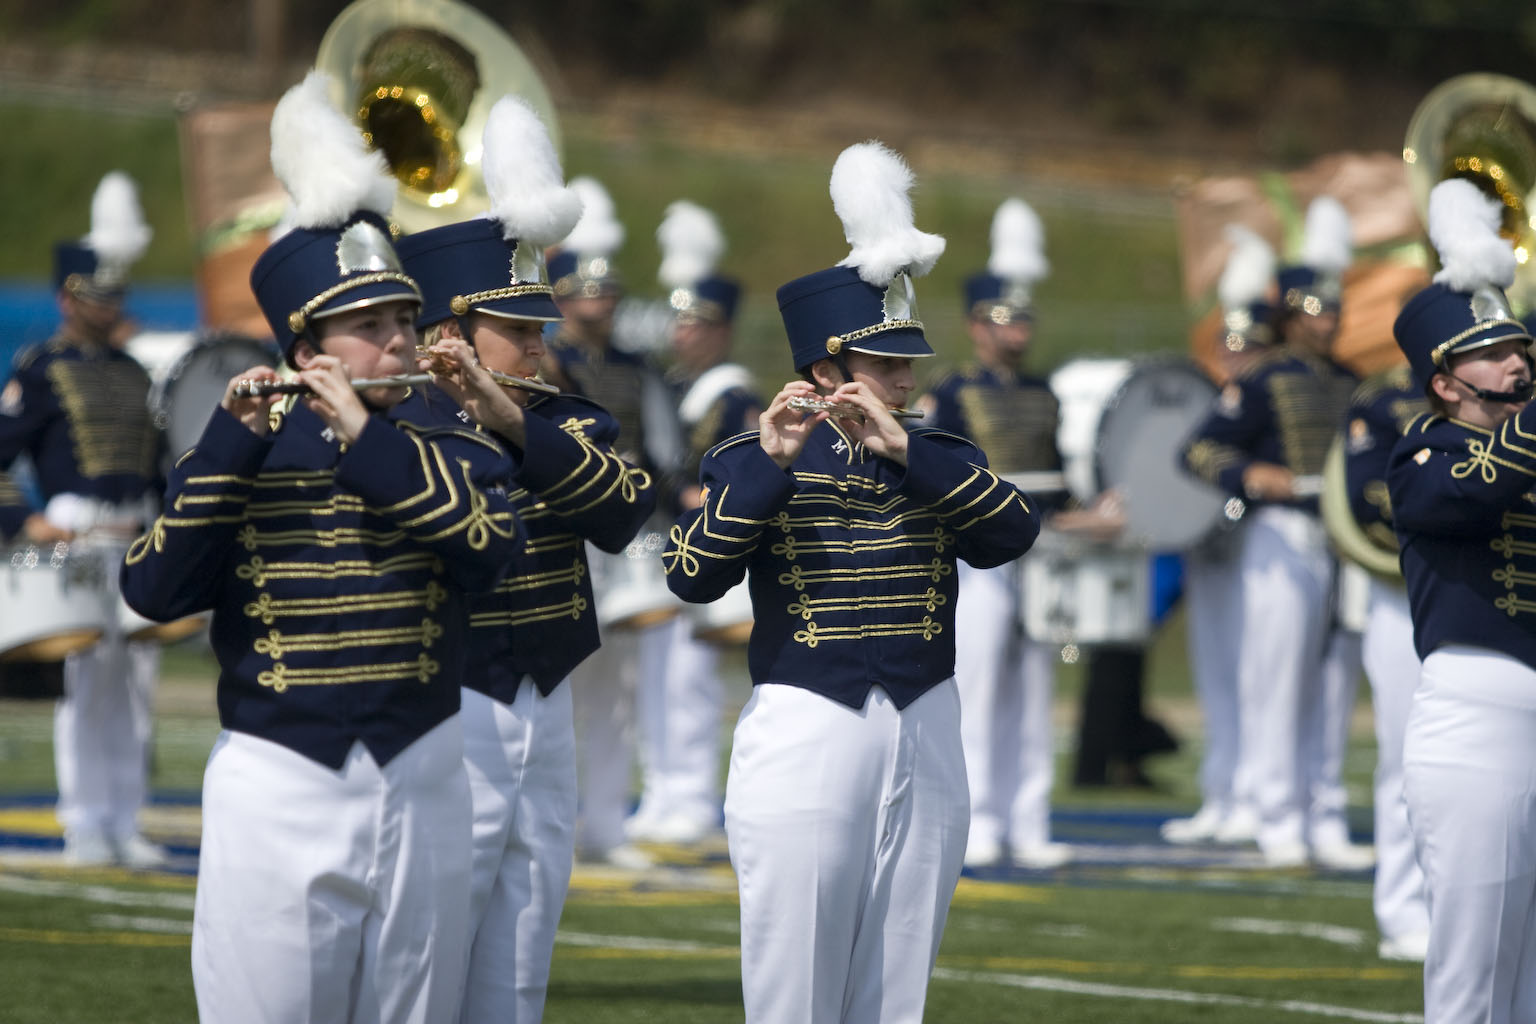 MOUNTAIN LION MARCHING BAND